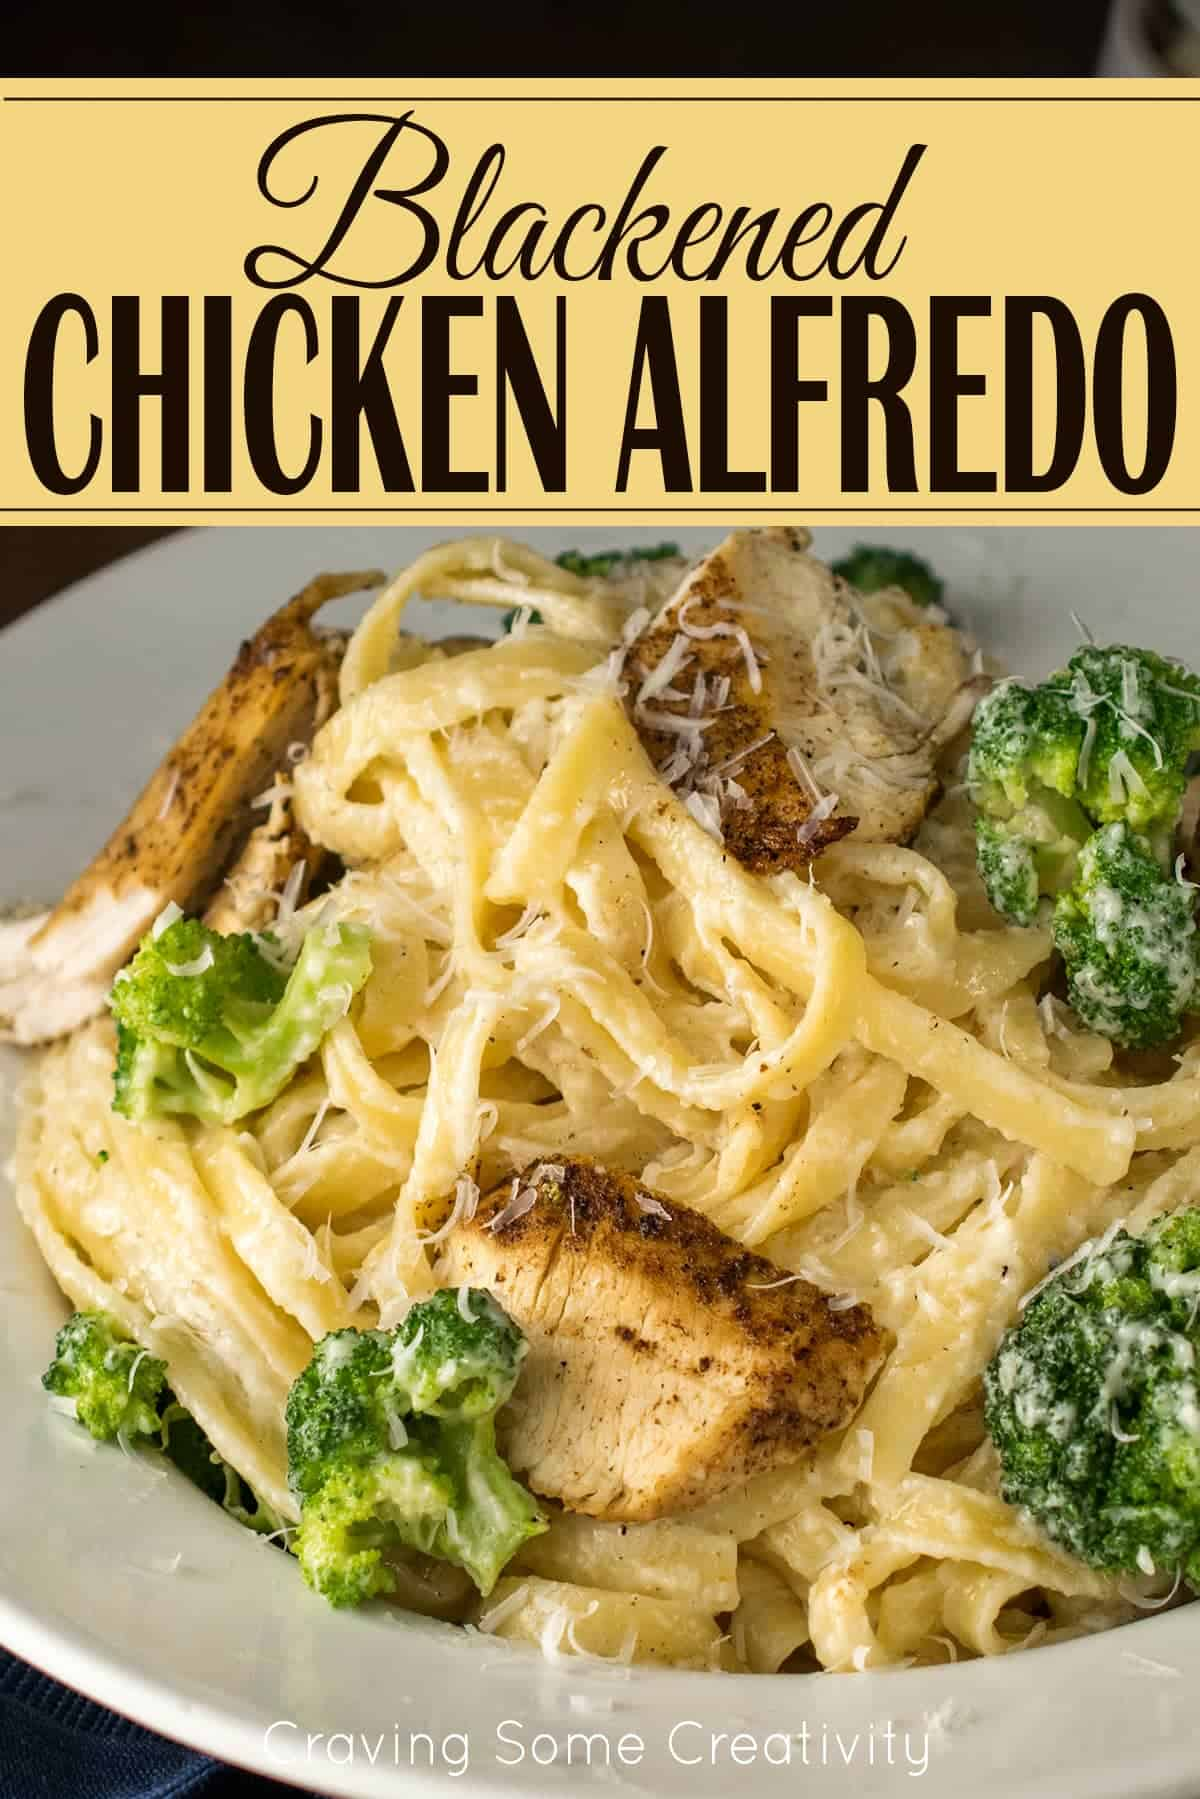 Blackened Chicken Alfredo pasta in bowl with recipe title